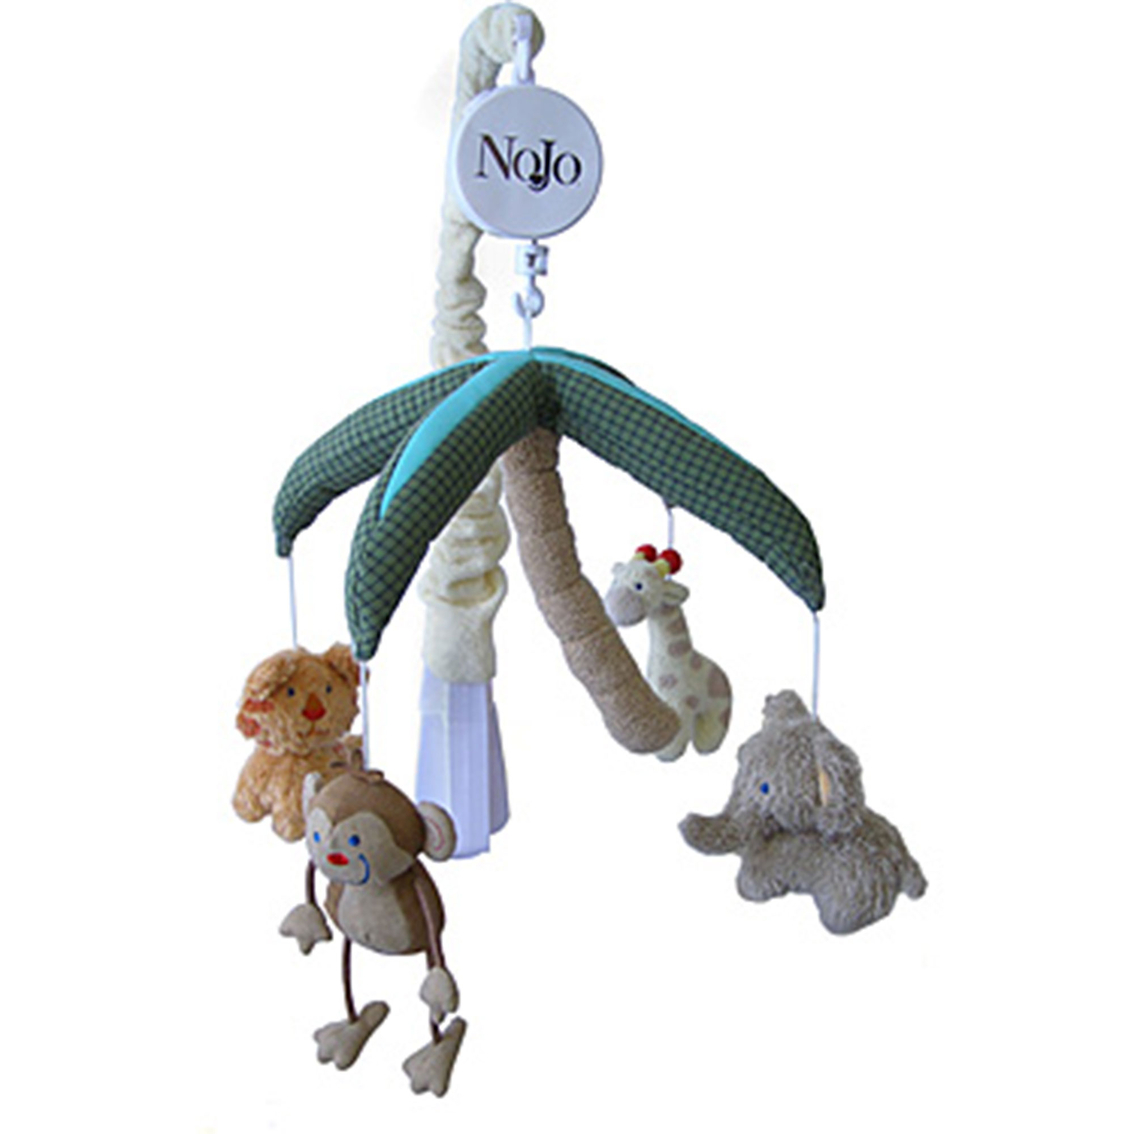 Nojo Jungle Babies Musical Mobile Mobiles Baby Toys Shop The